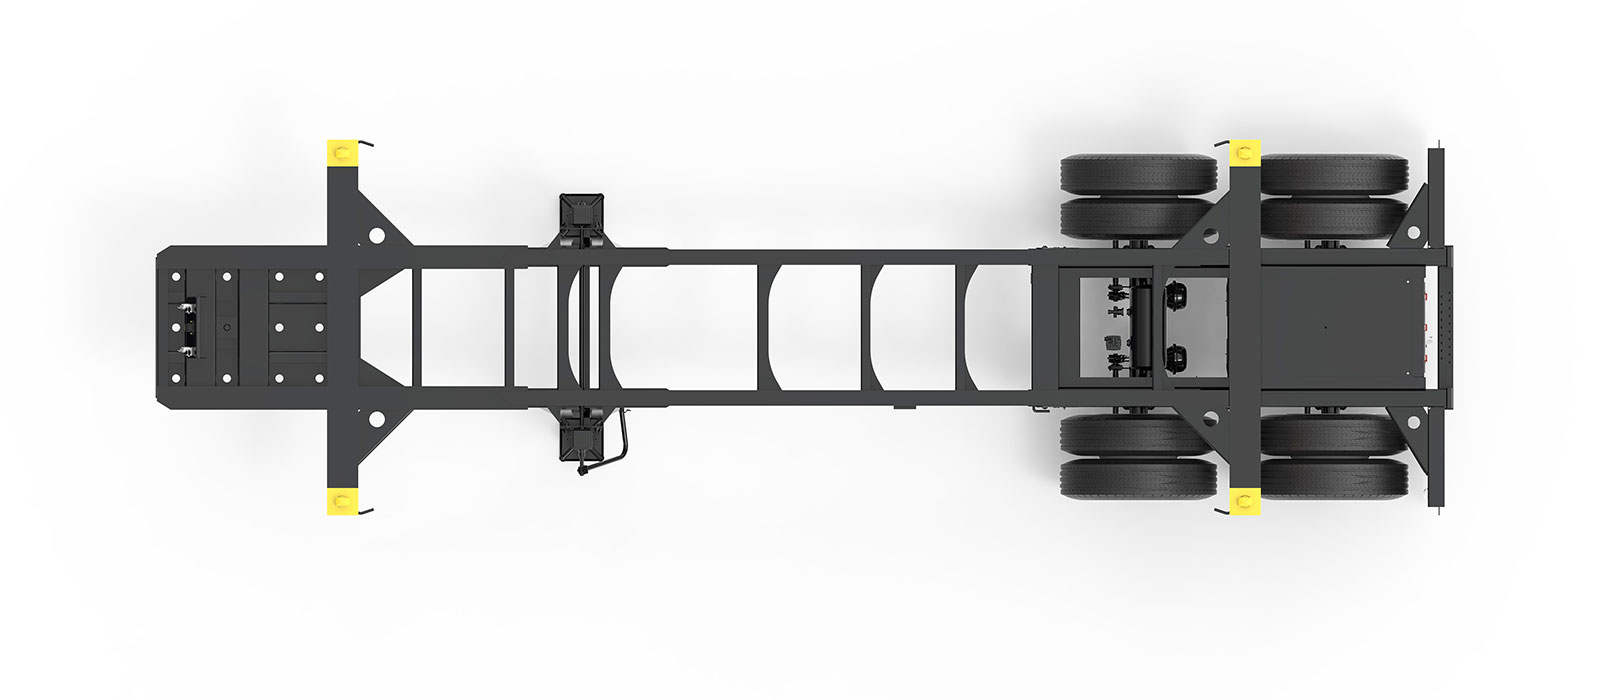 23.5' Tandem Slider Container Chassis Orthographic Top View Final